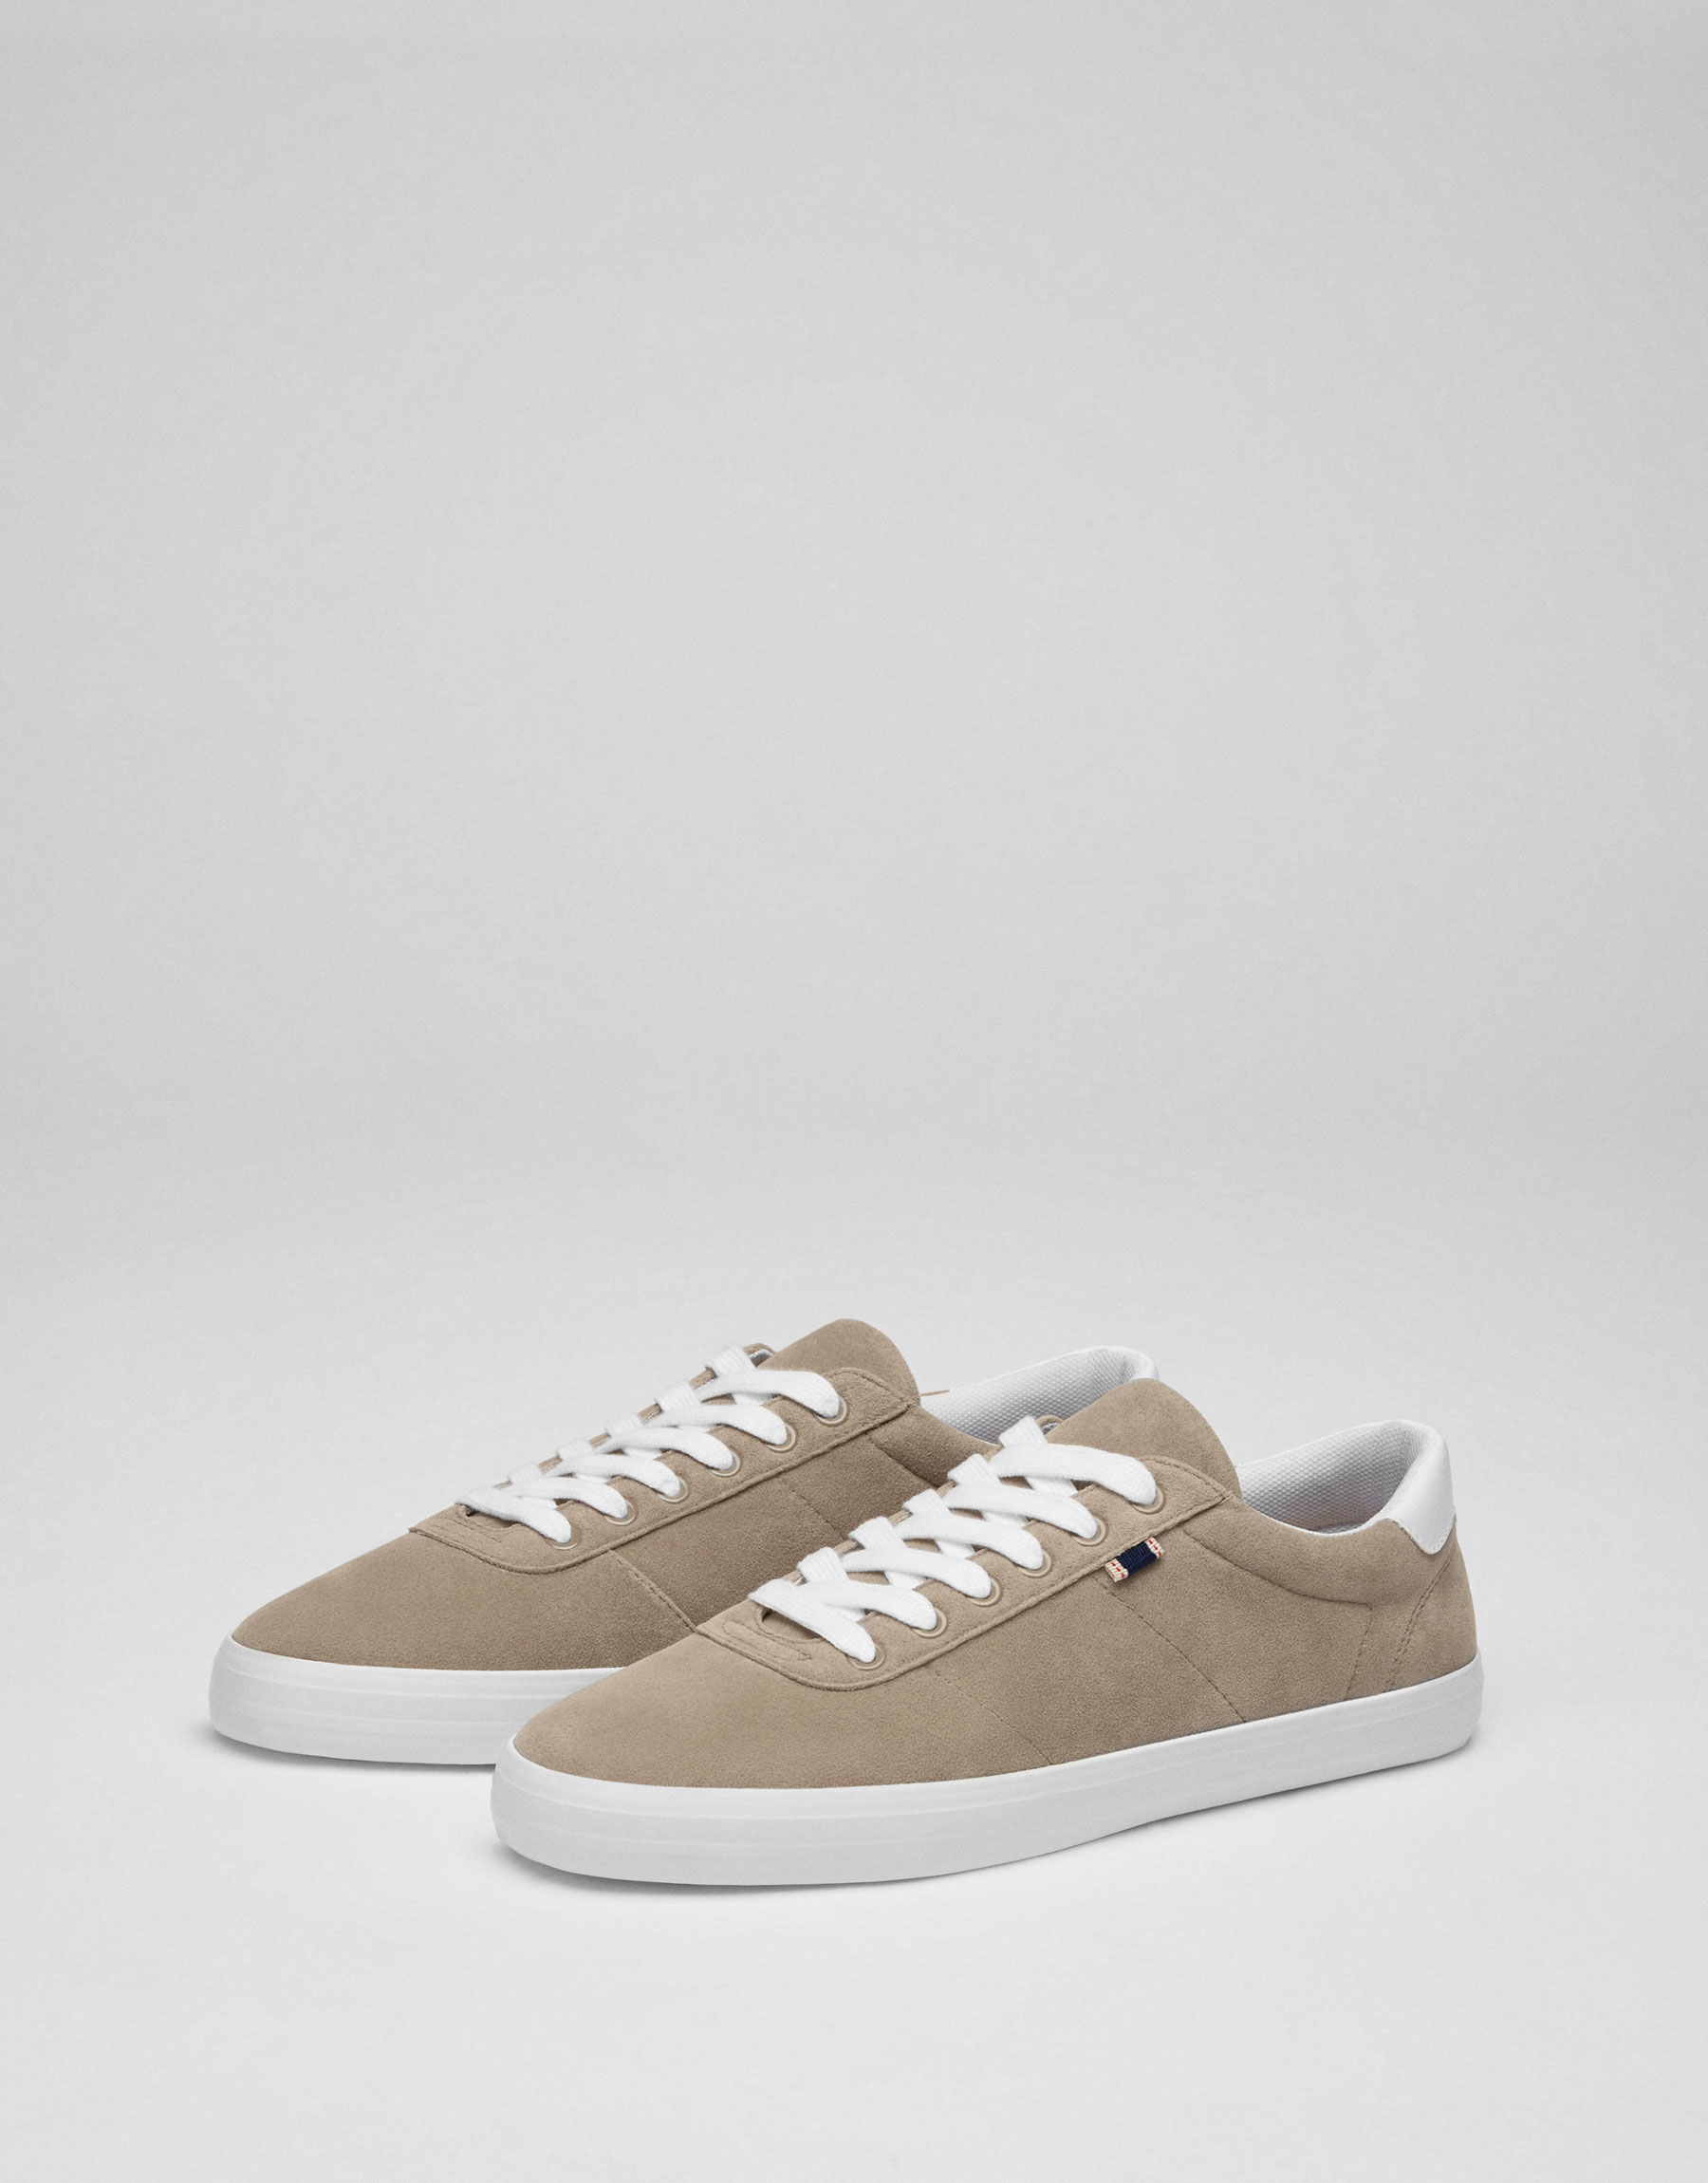 Basic sand-coloured sneakers with label